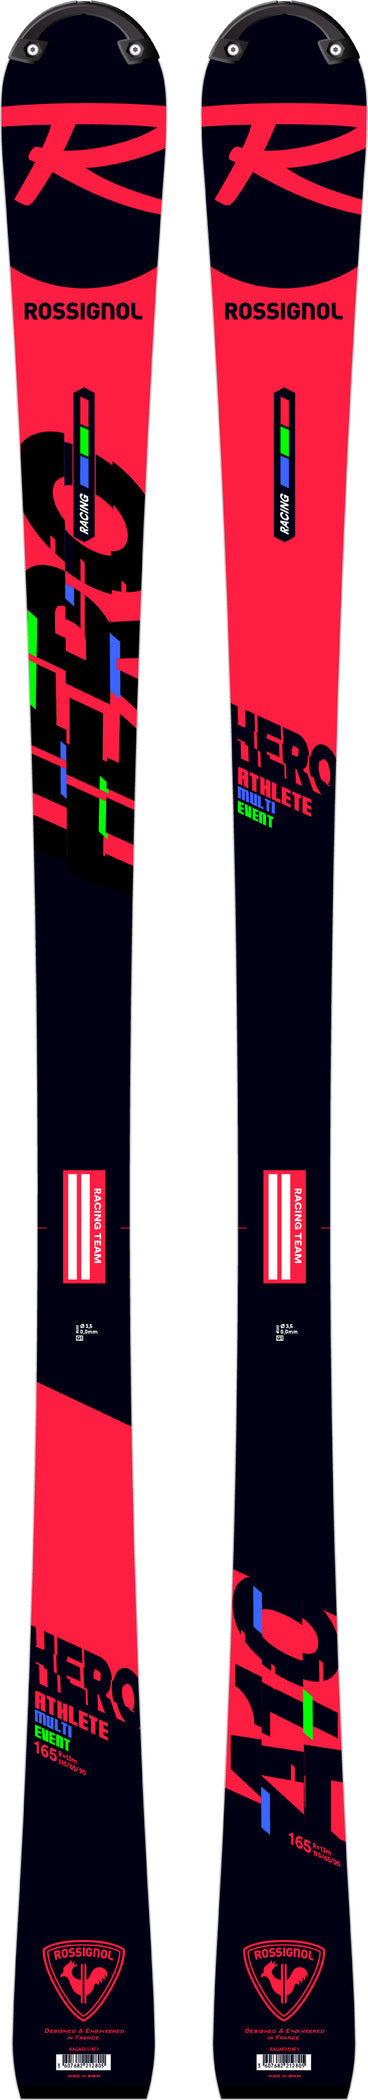 Rossignol Hero Athlete Multi Event Race Skis 2021